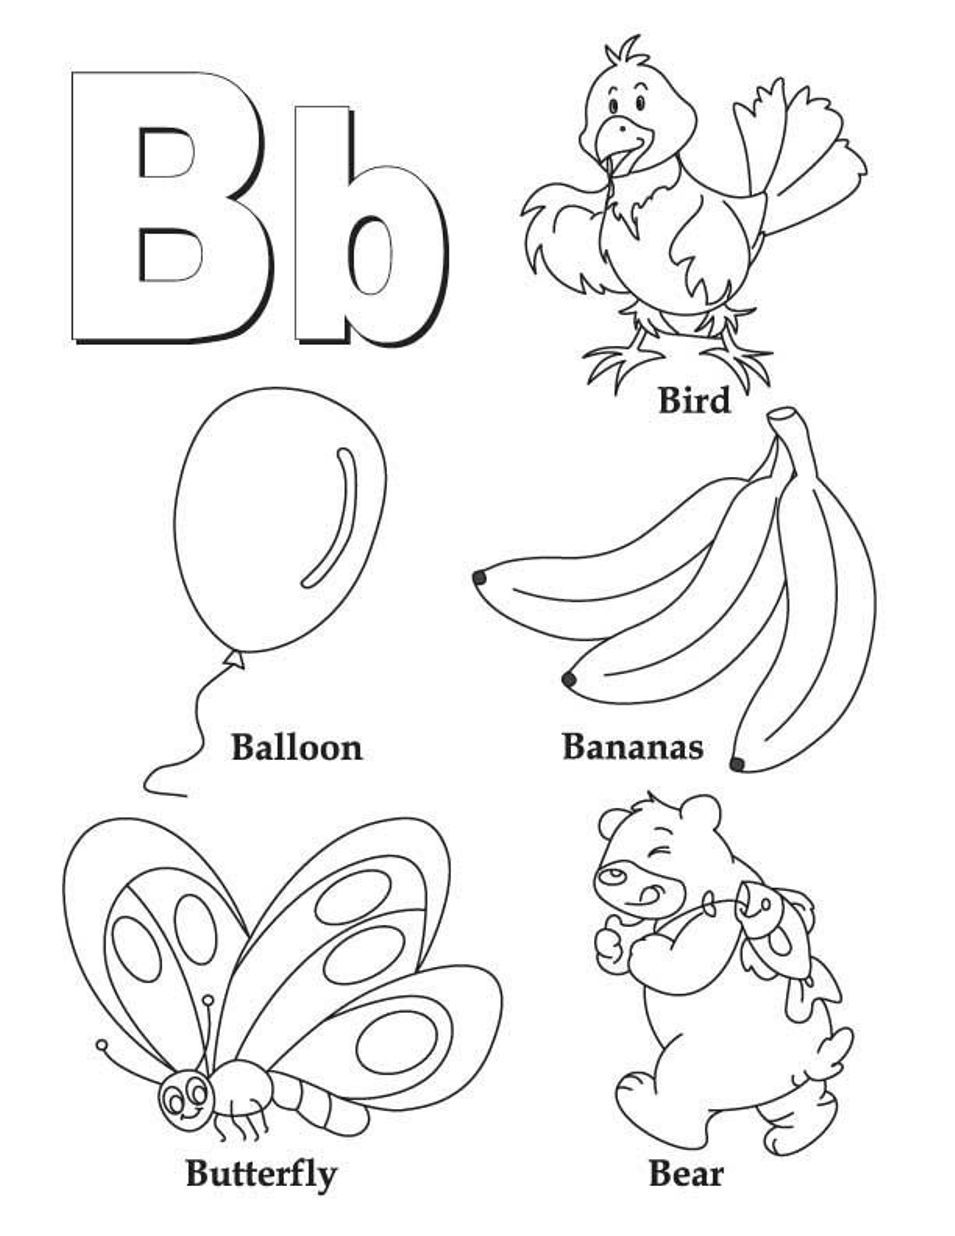 Alphabet pages for coloring book - Alphabet Coloring Pages B Word Printable